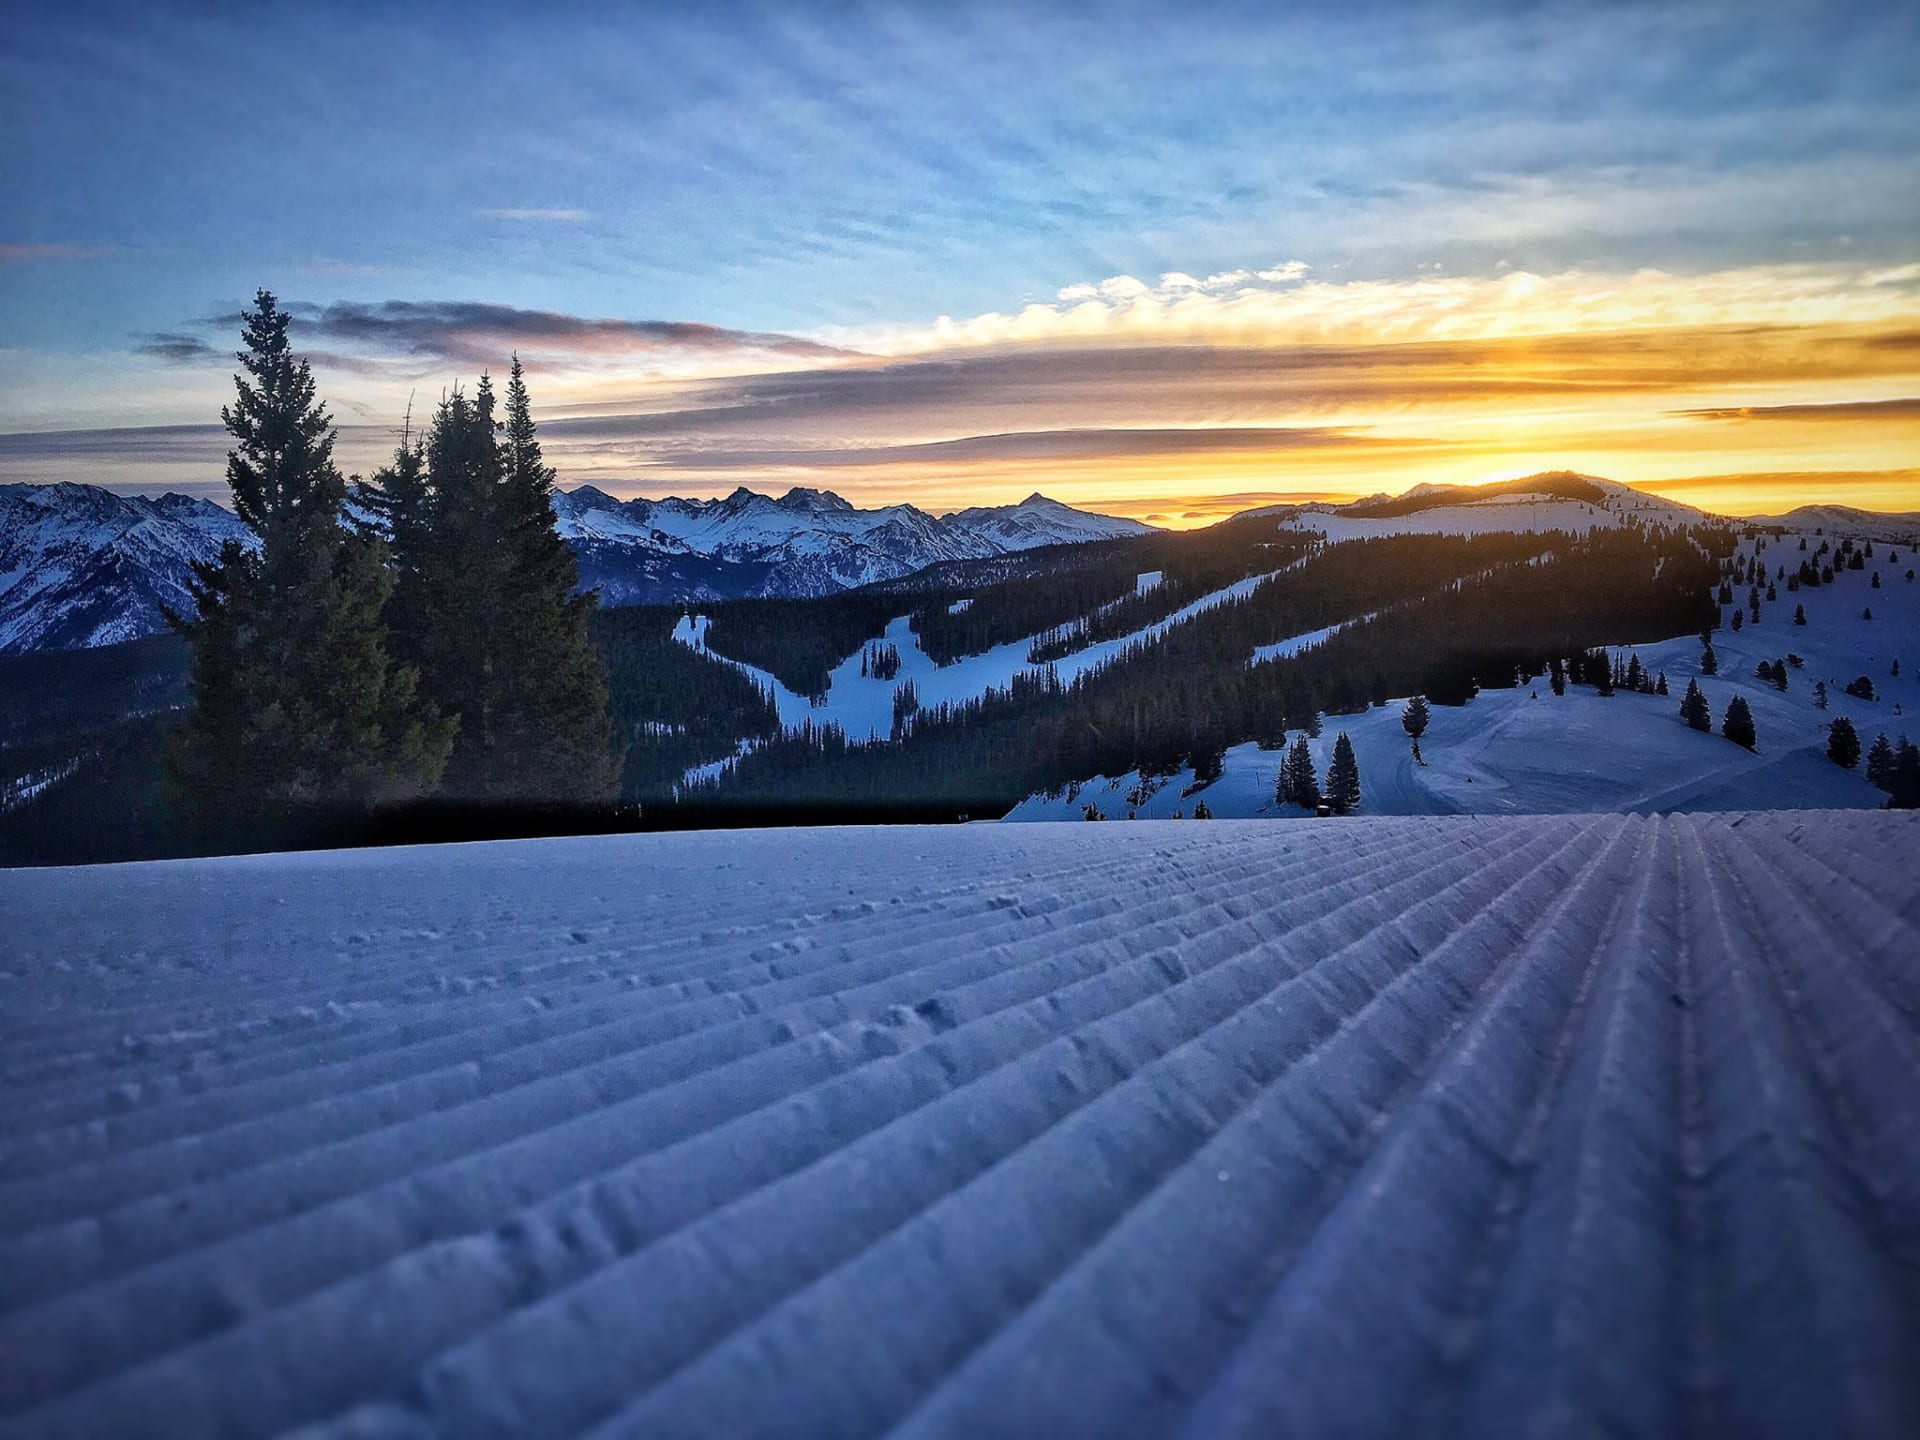 Vail to use reservation system for on-mountain access, announces opening dates for 2020-21 season